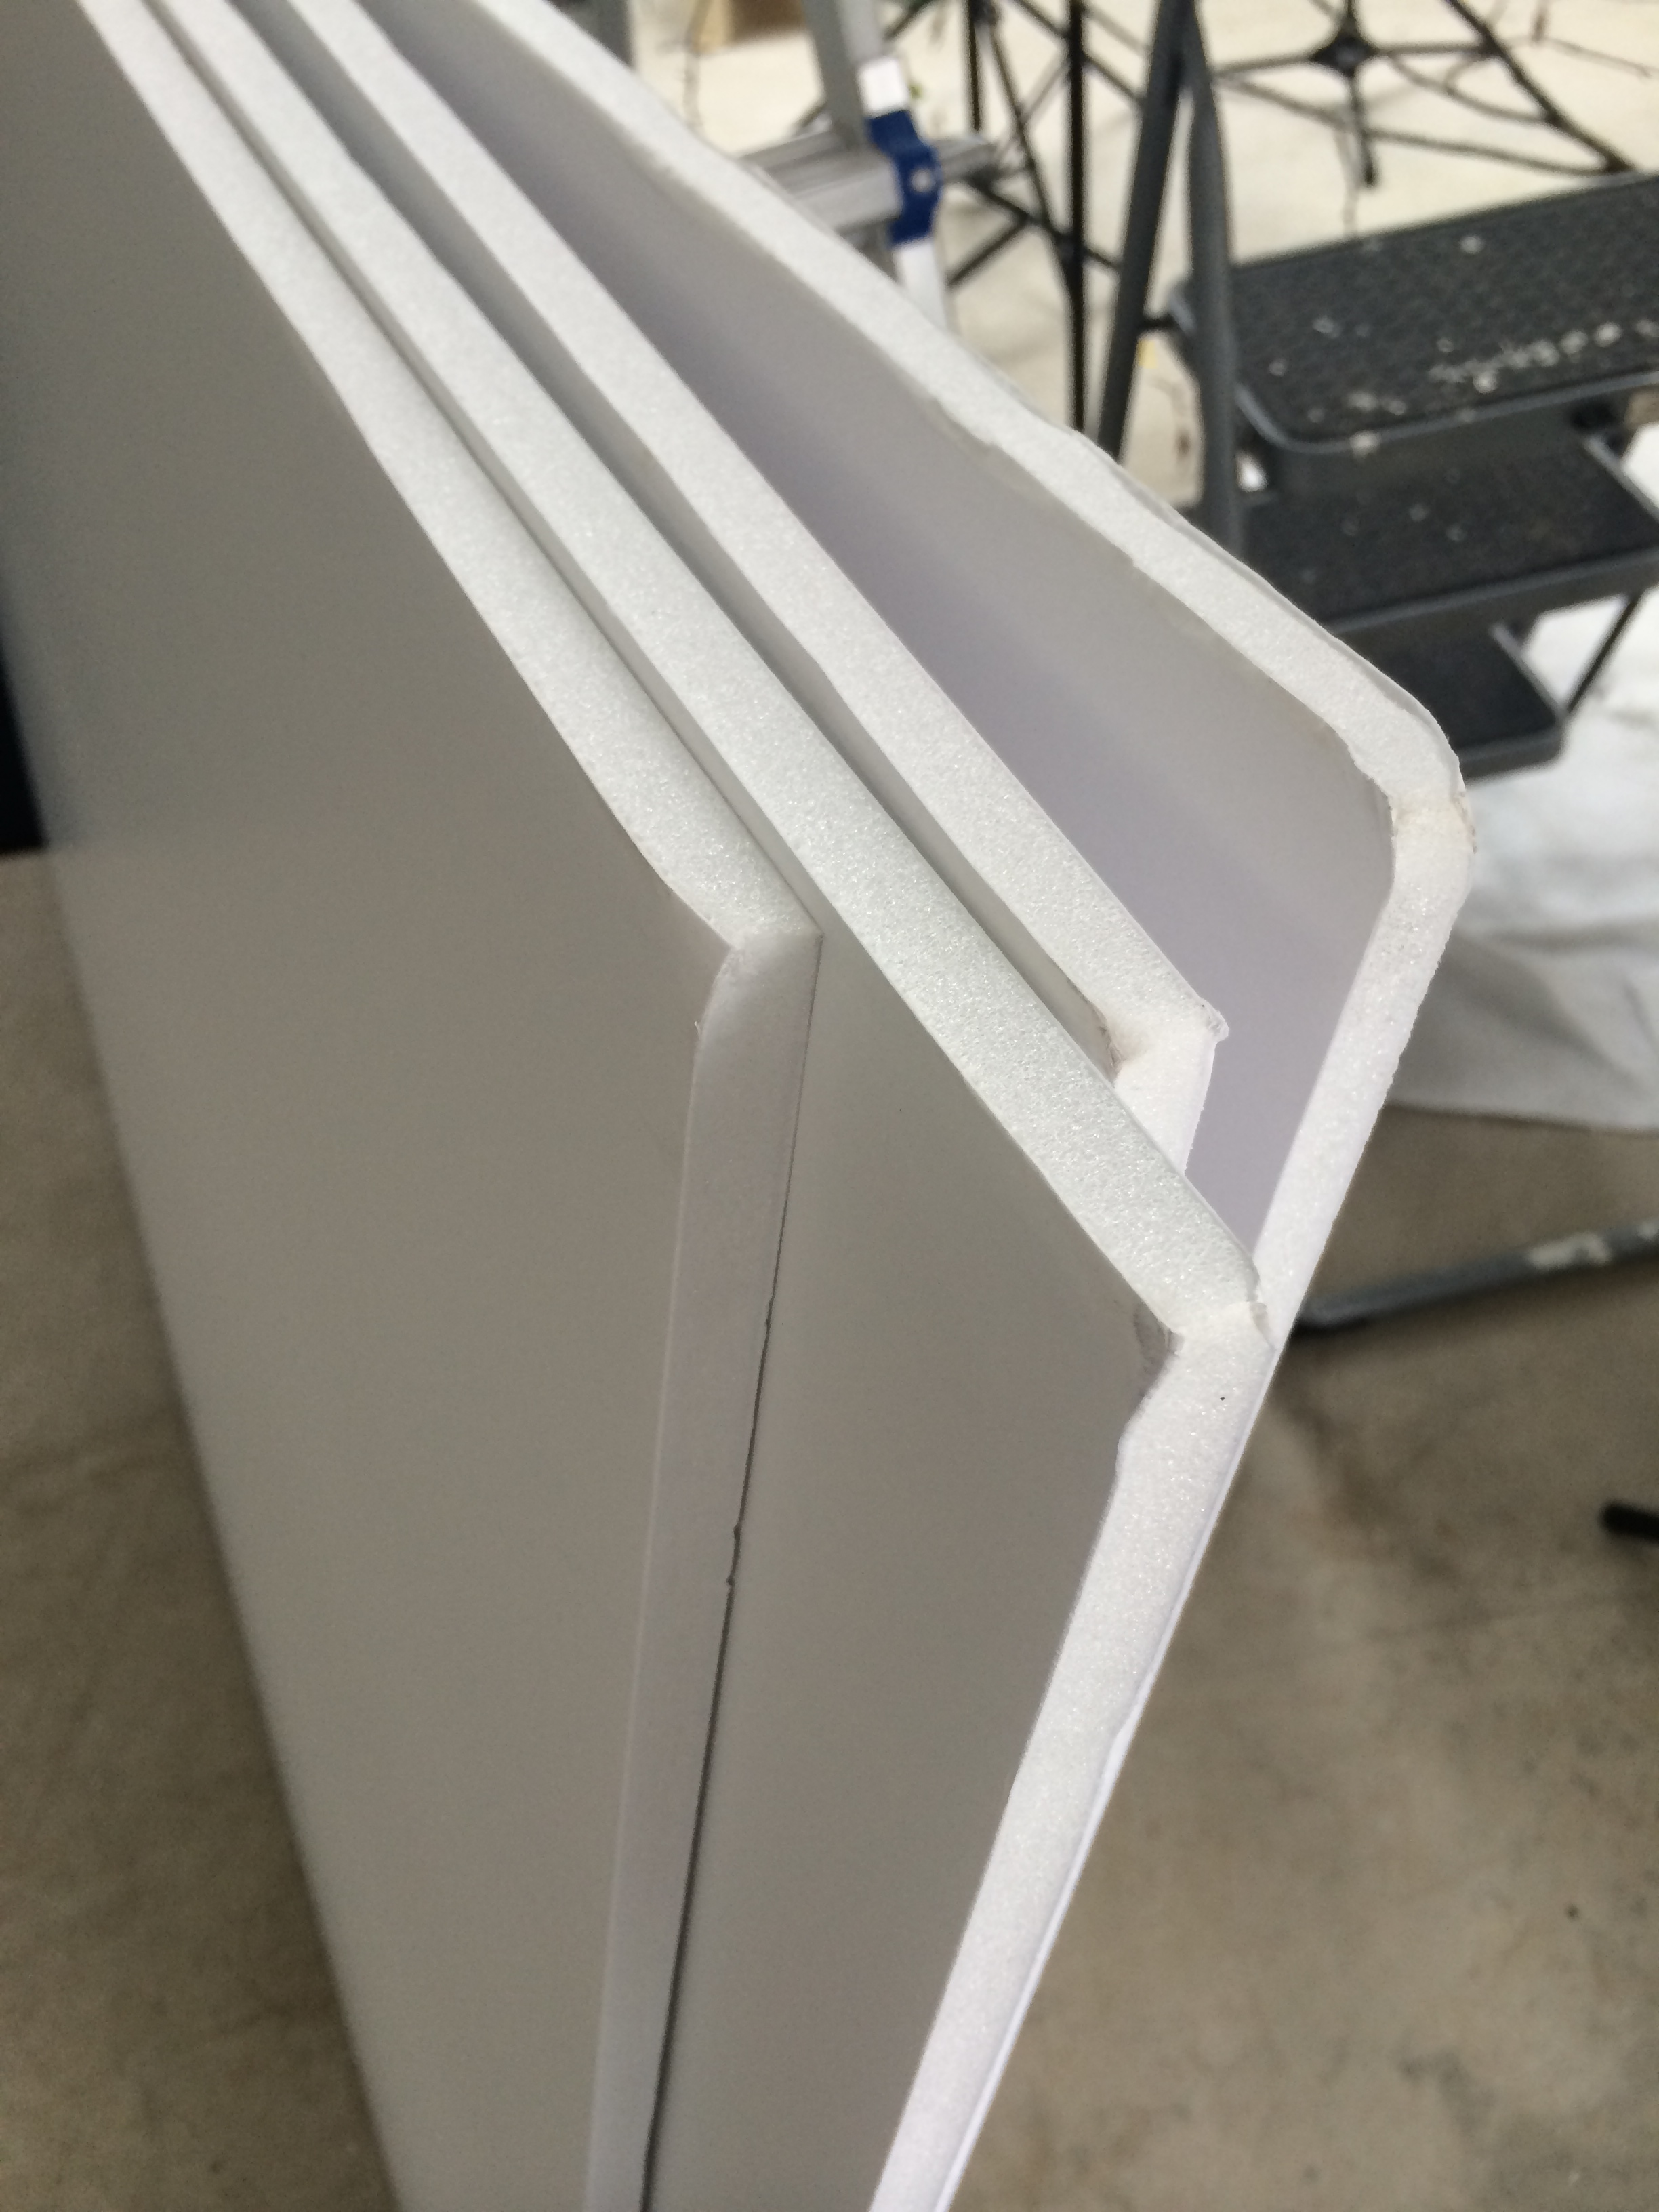 "1/2"" foam-core panels. Don't worry too much about the squished corners as they will be taped over, but you do need to be more careful with them than with more durable Gatorboard."